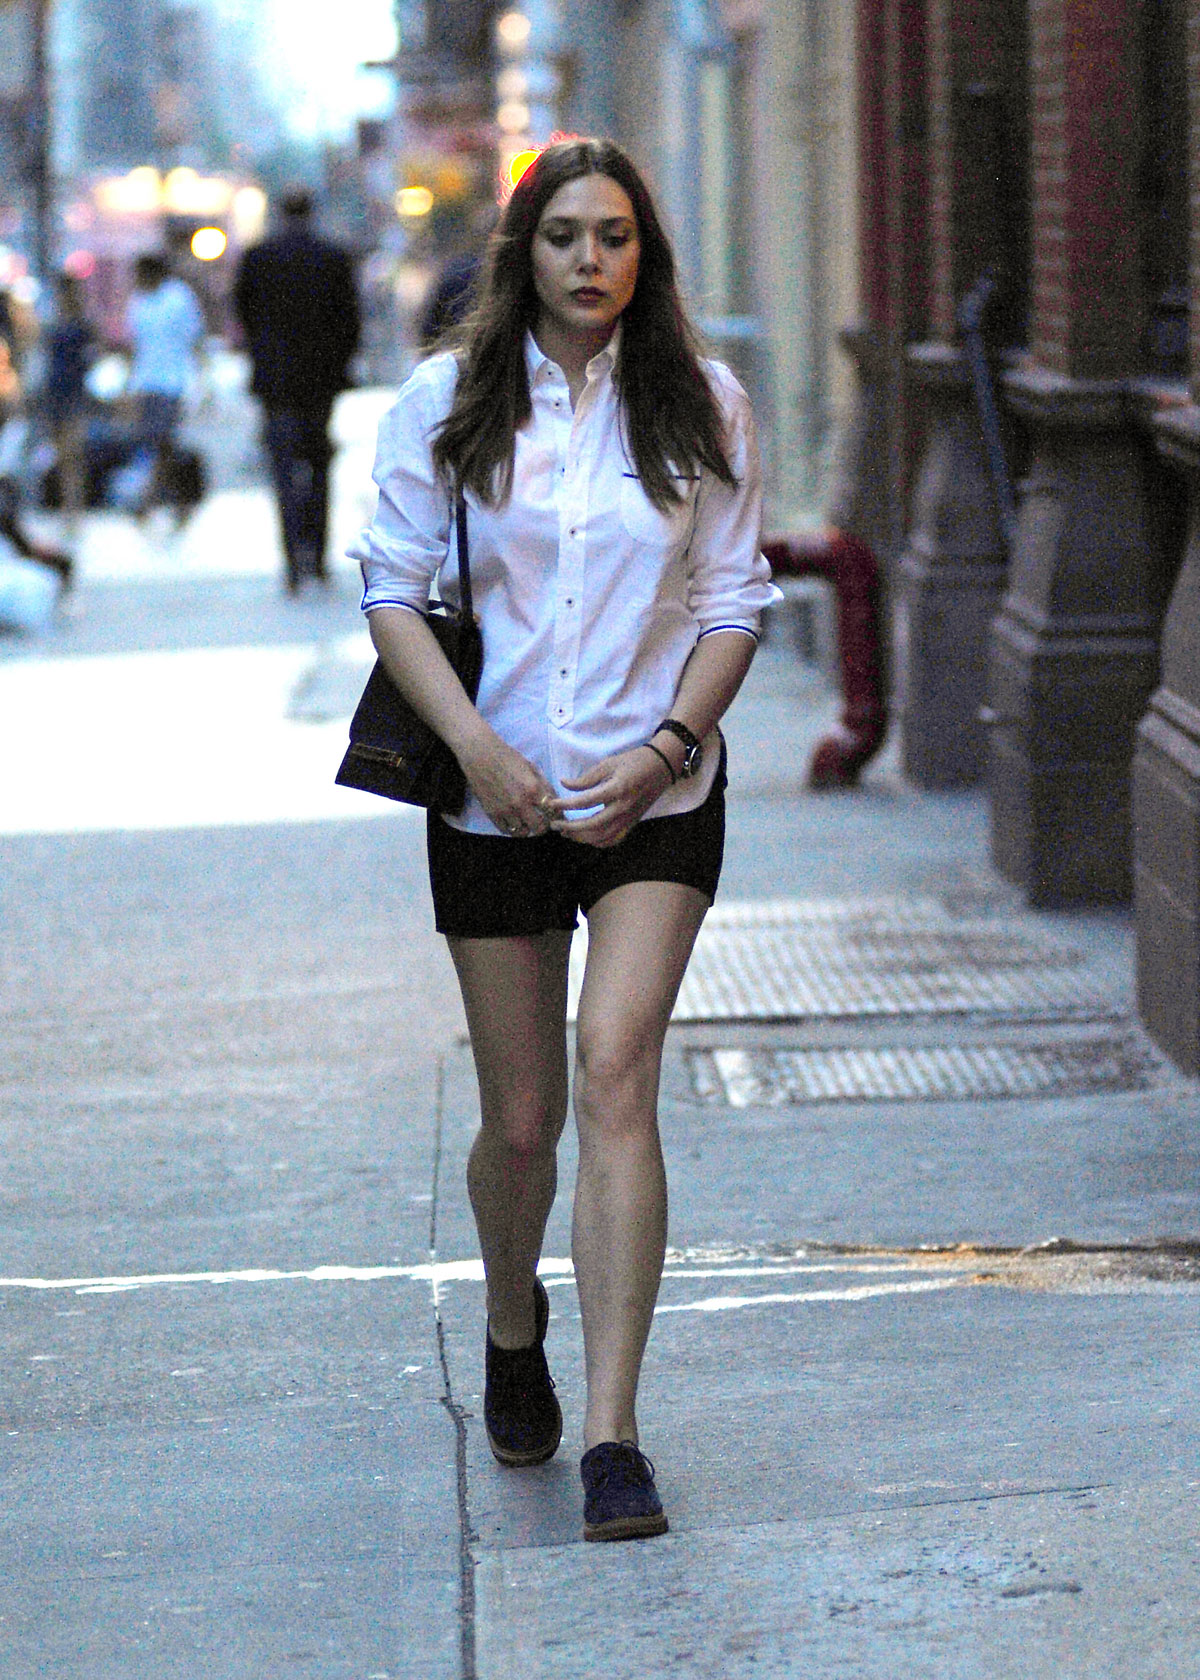 ELIZABETH OLSEN Leggy Candids Out And About In New York